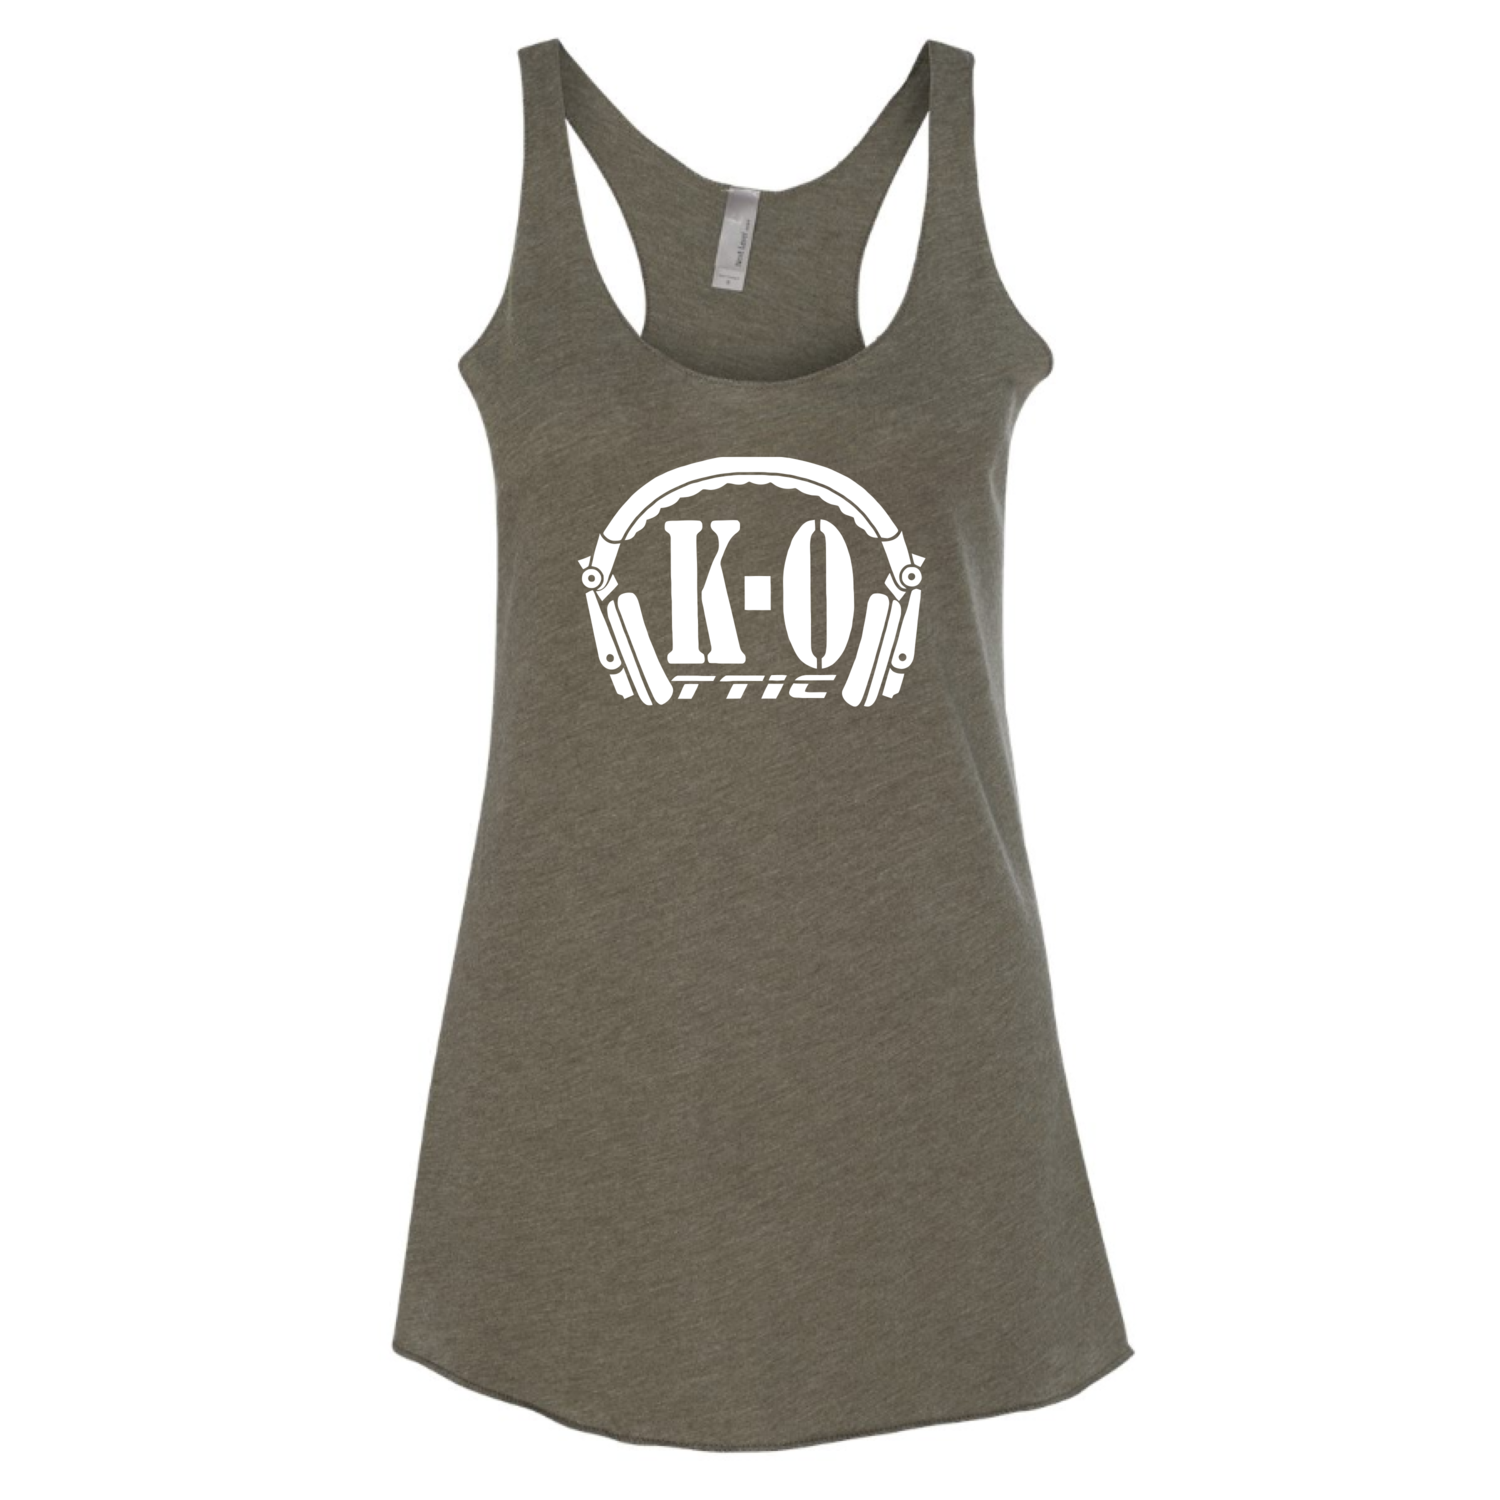 Women's Army Green Tank